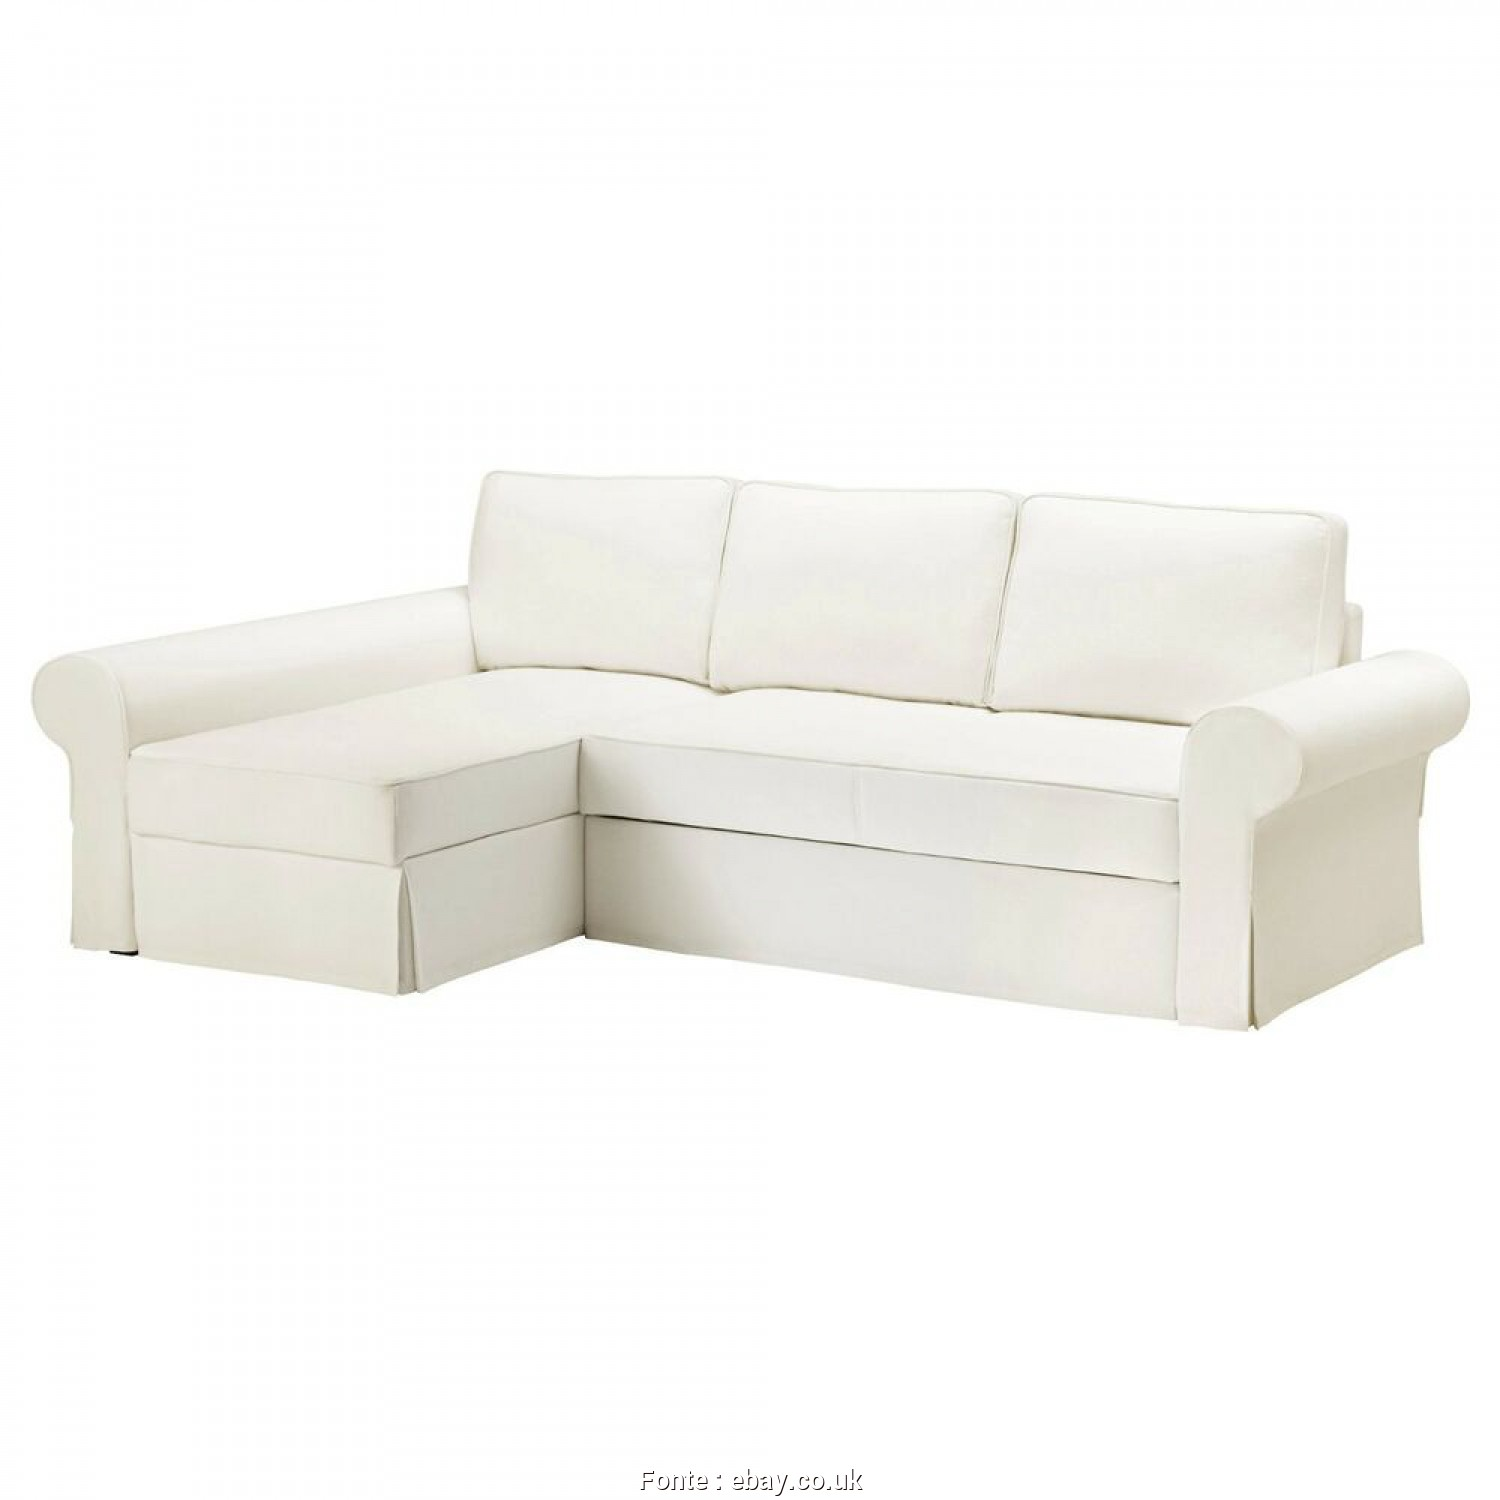 Ikea Backabro Ebay, Completare Details About Ikea BACKABRO Cover Sofa-Bed With Chaise Longue Hylte White